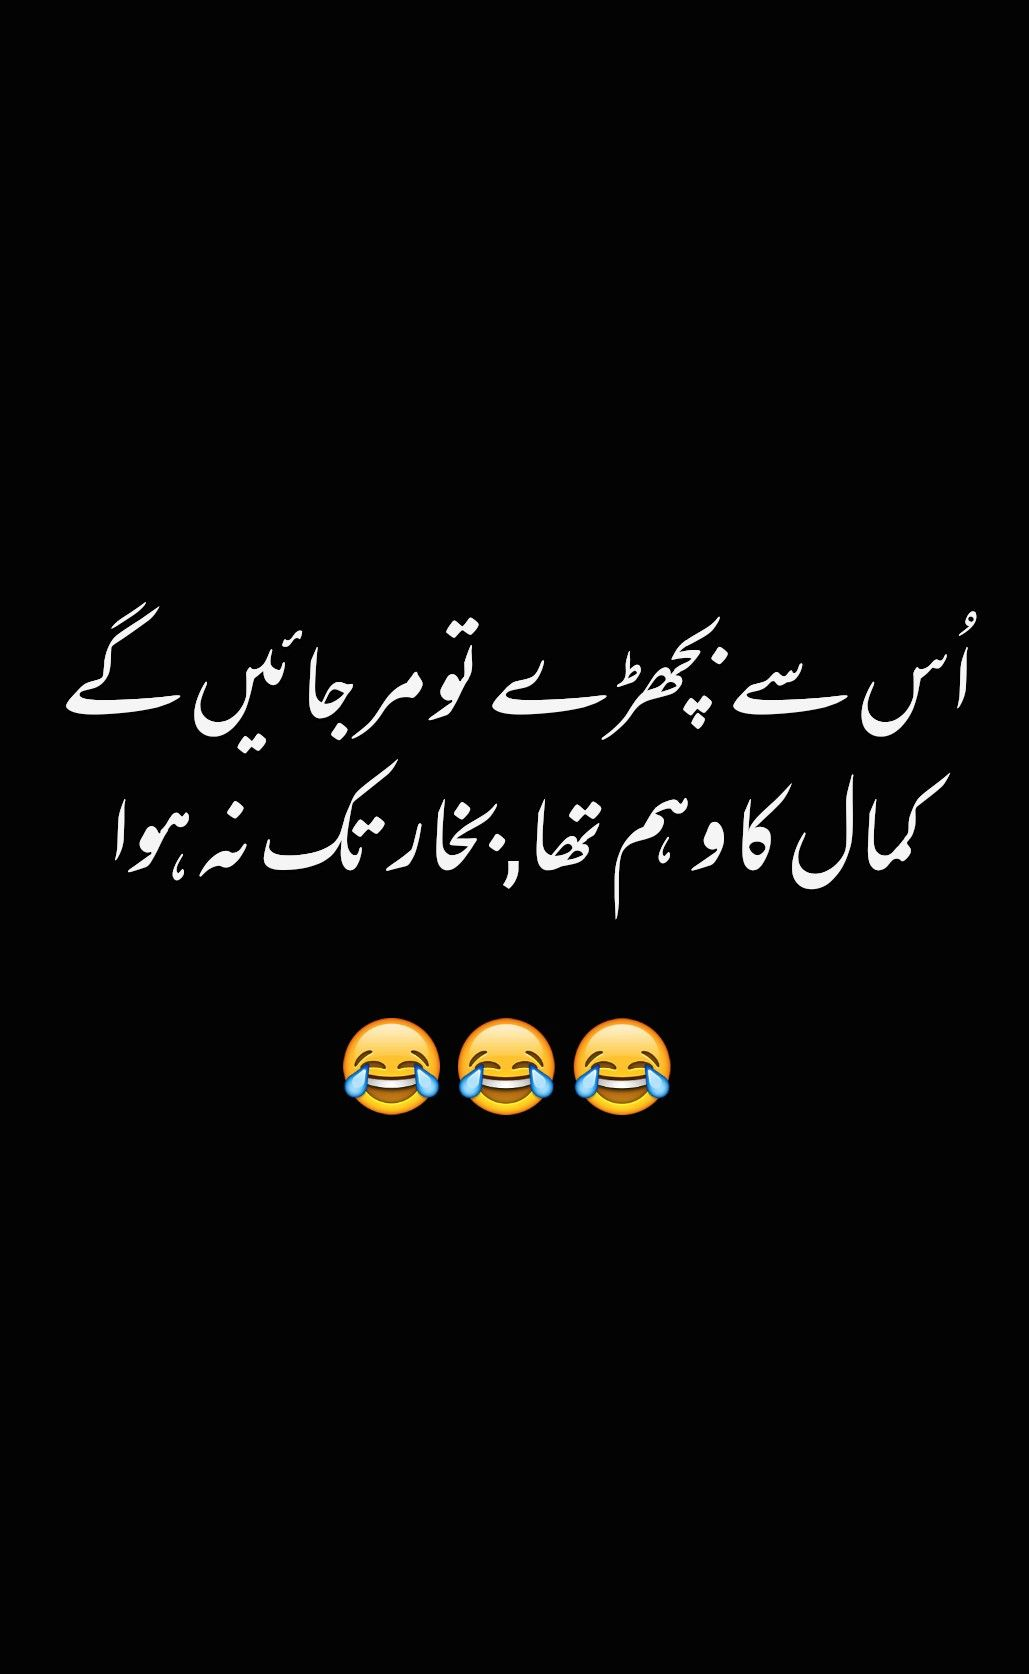 Pin By Sunny Shaikh On Mix Fun Quotes Funny Urdu Funny Quotes Funny Quotes In Urdu